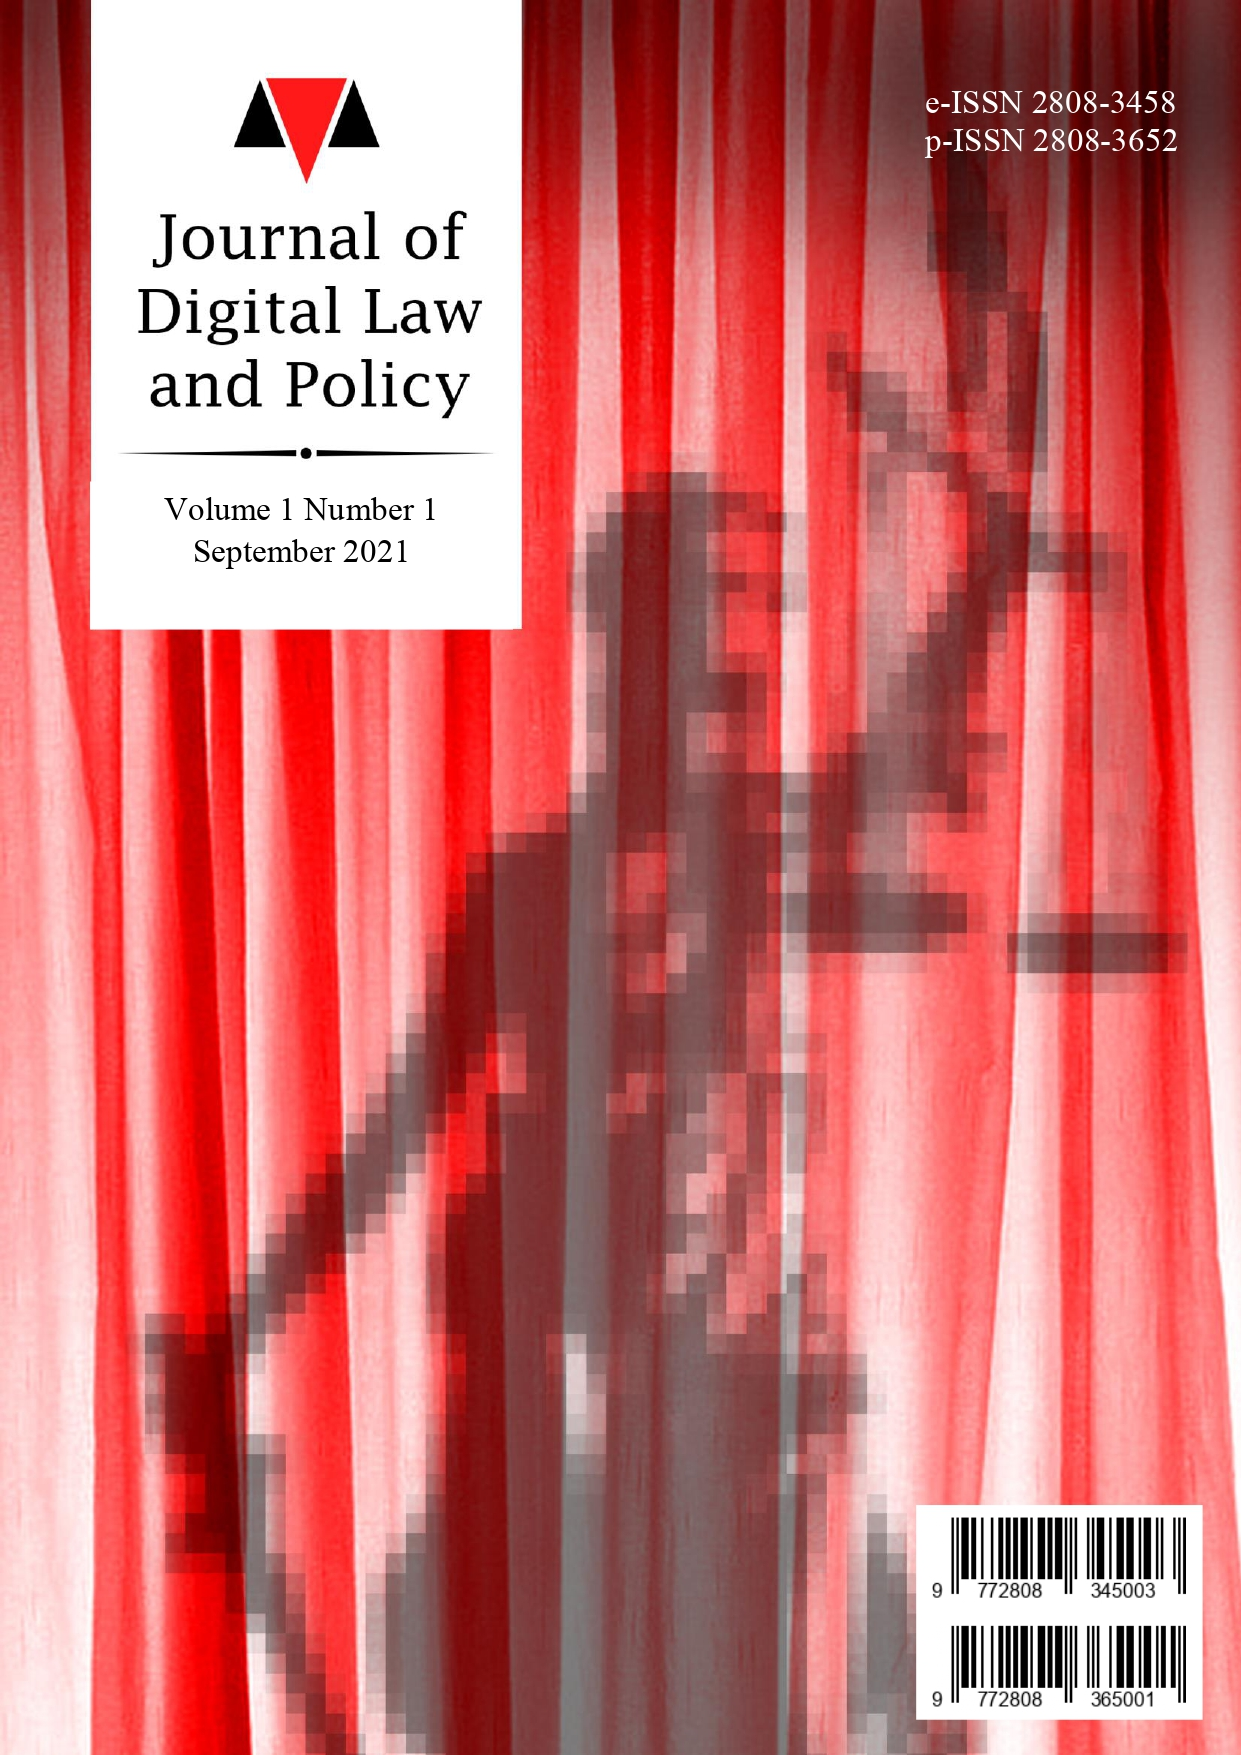 View Vol. 1 No. 1 (2021): Journal of Digital Law and Policy - September 2021